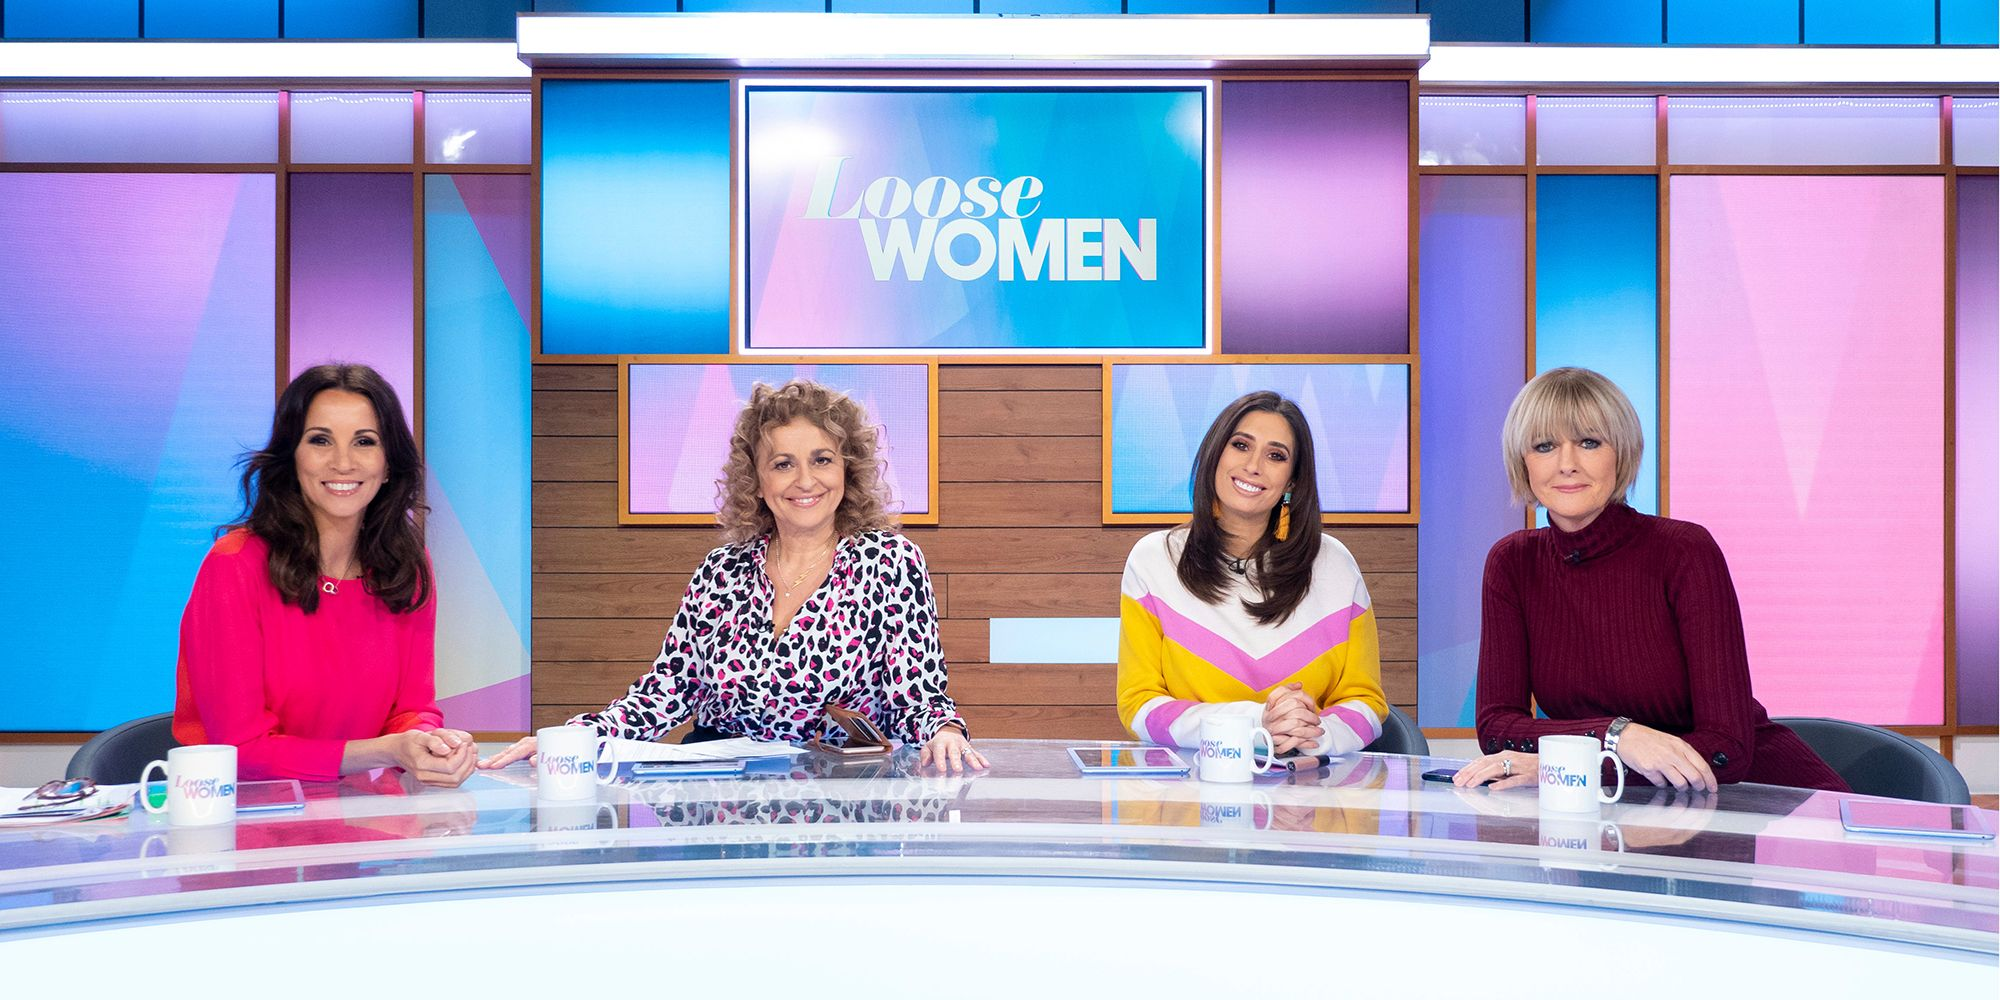 'Loose Women' TV show, London, UK - 17 Jan 2019